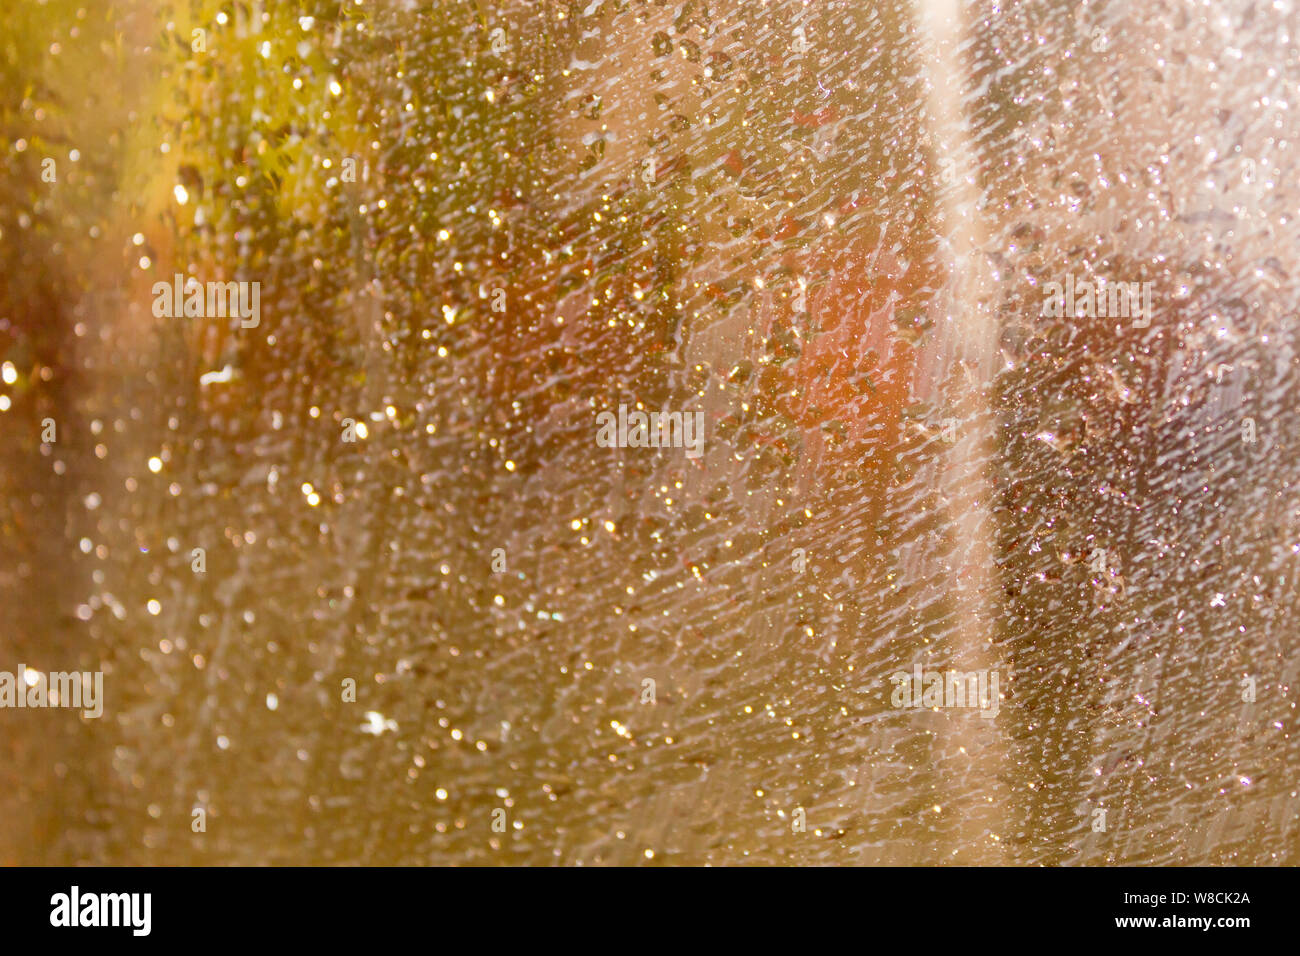 Rain Drops On Surface of wet Window Glass pane In Rainy Season. Abstract background. Natural Pattern of raindrops isolated from outdoor cloudy environ Stock Photo